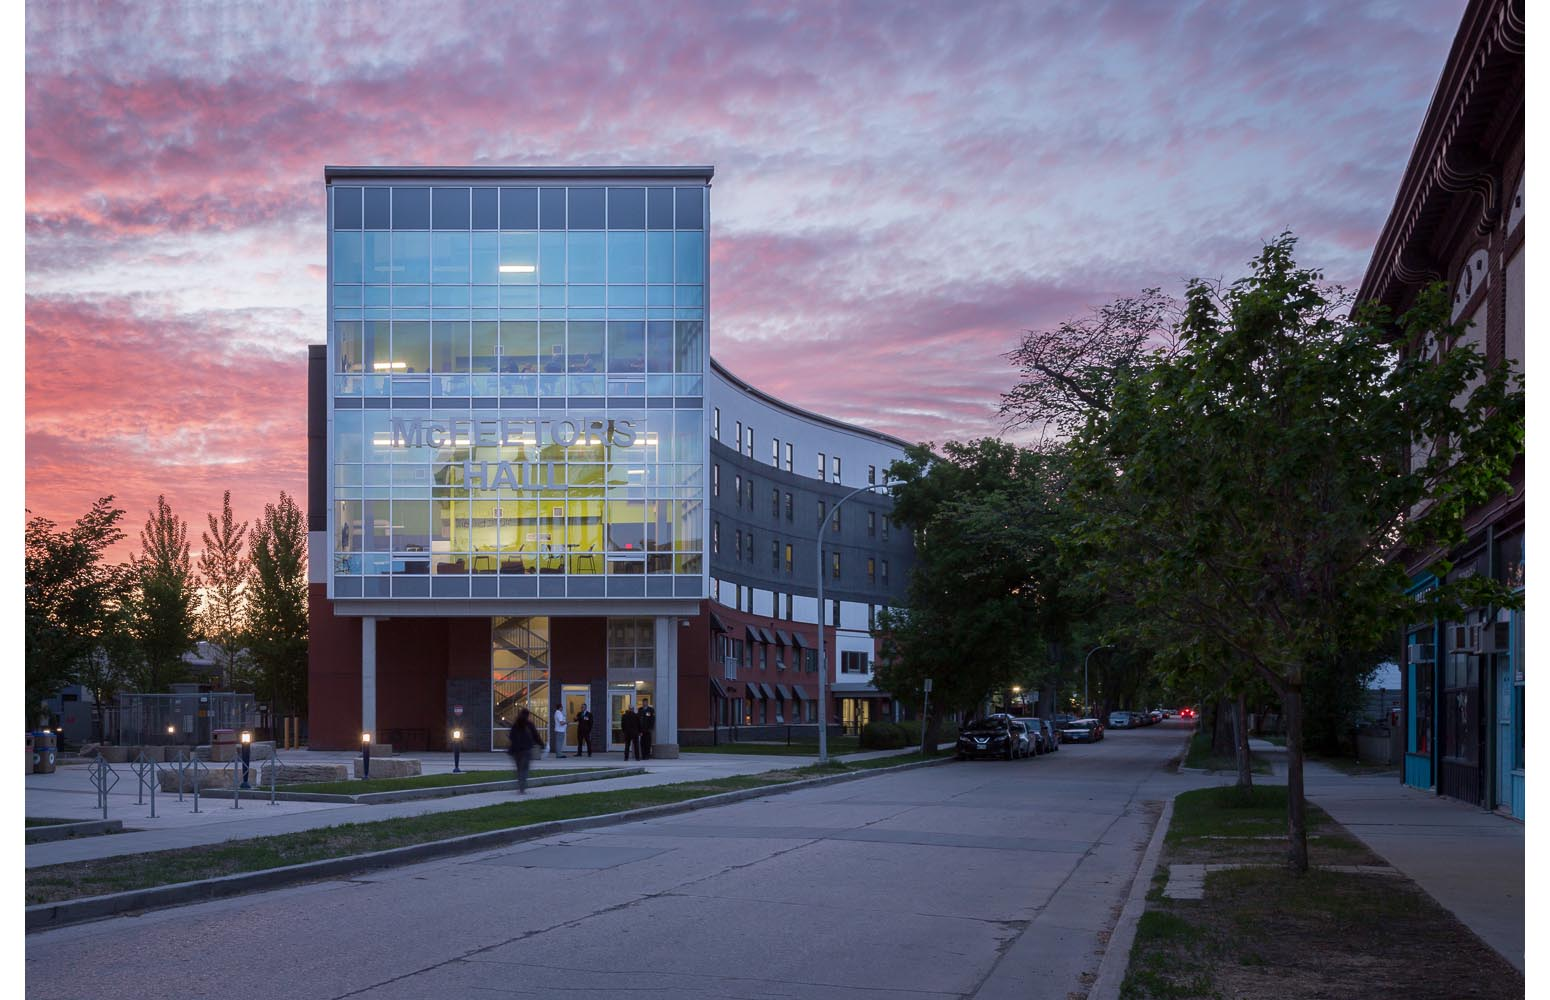 U of W Housing (McFeetor's Hall), exterior photo of building at sunset / Photo:  Lindsay Reid